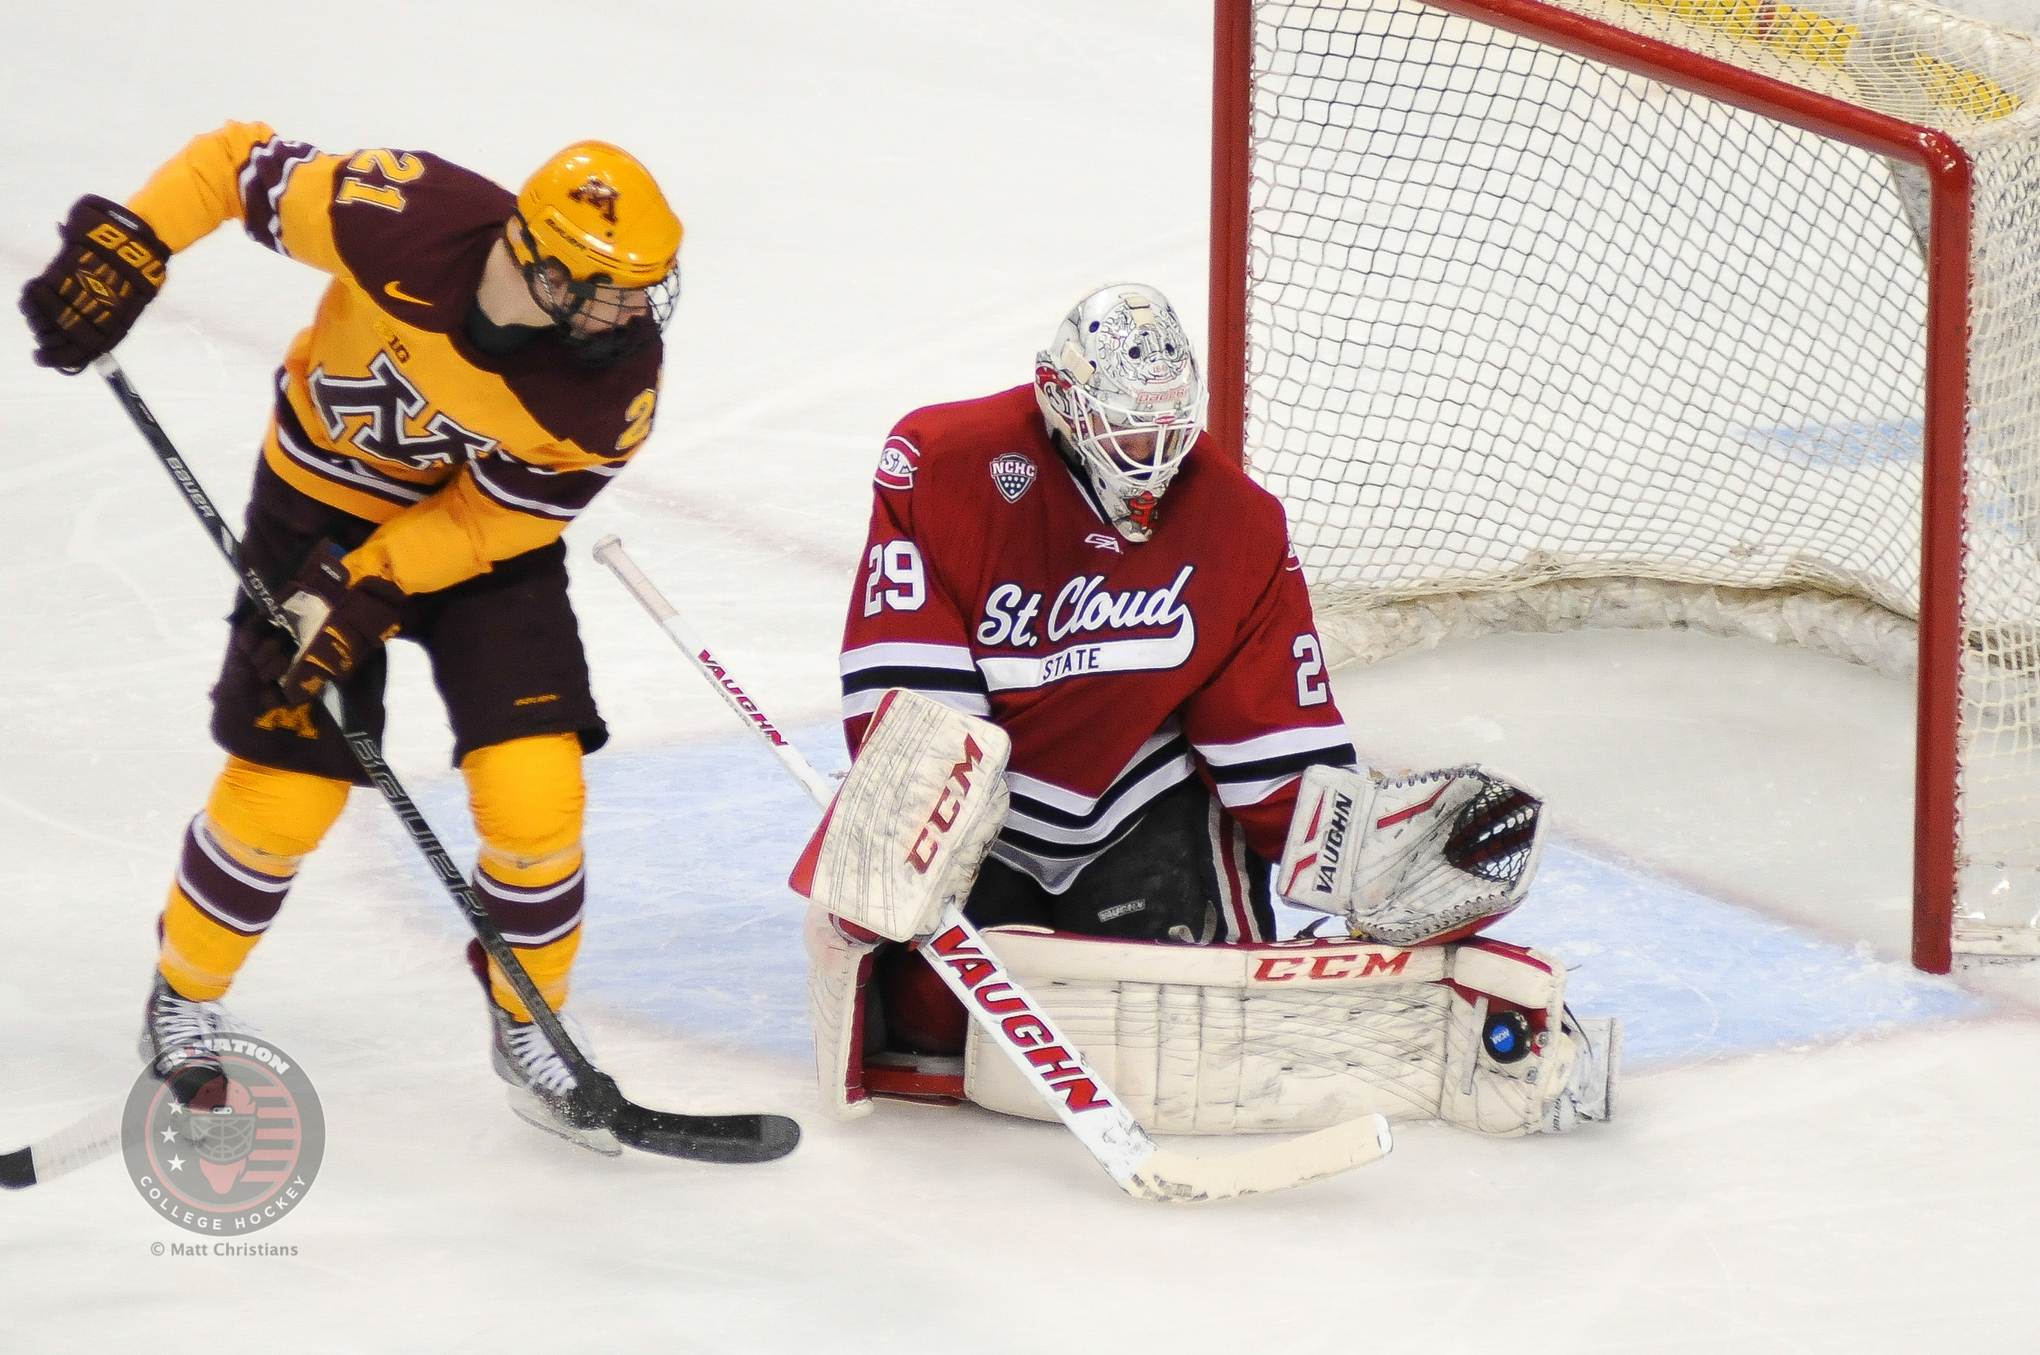 NCAA: Gopher Hockey Notebook - Tough Non-conference Stretch Begins For Minnesota